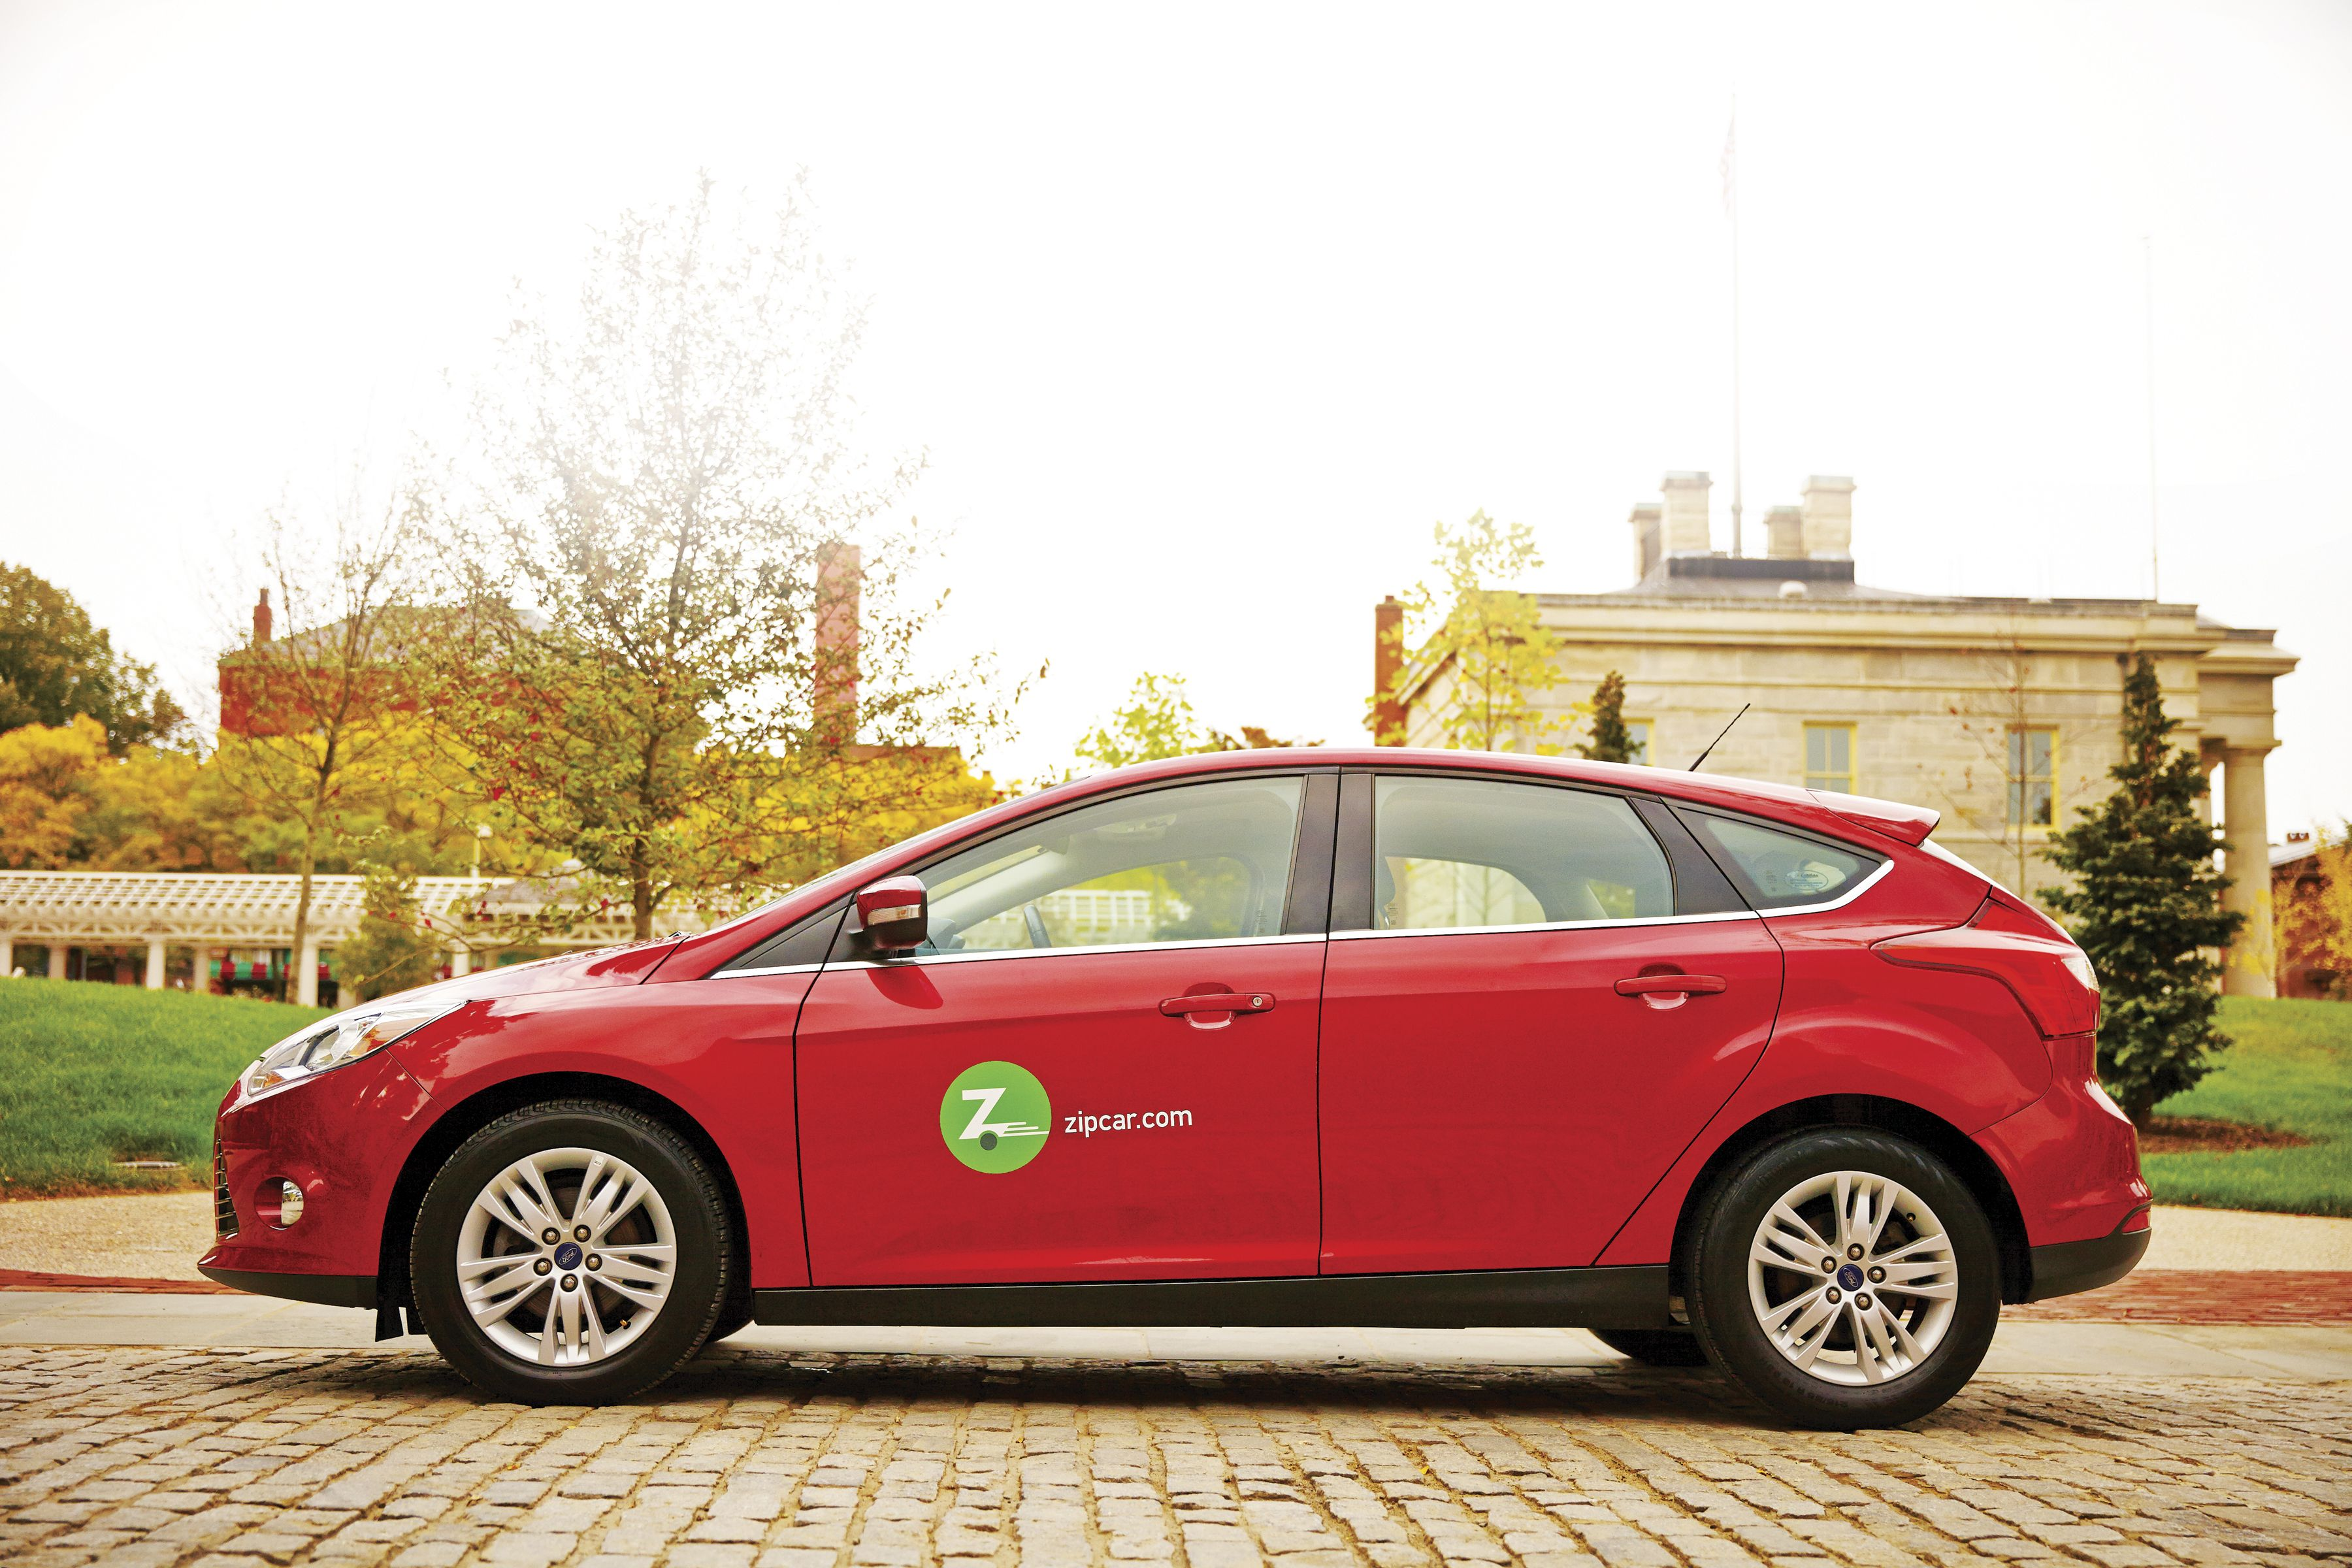 Using Car Sharing Services to Green Your Fleet